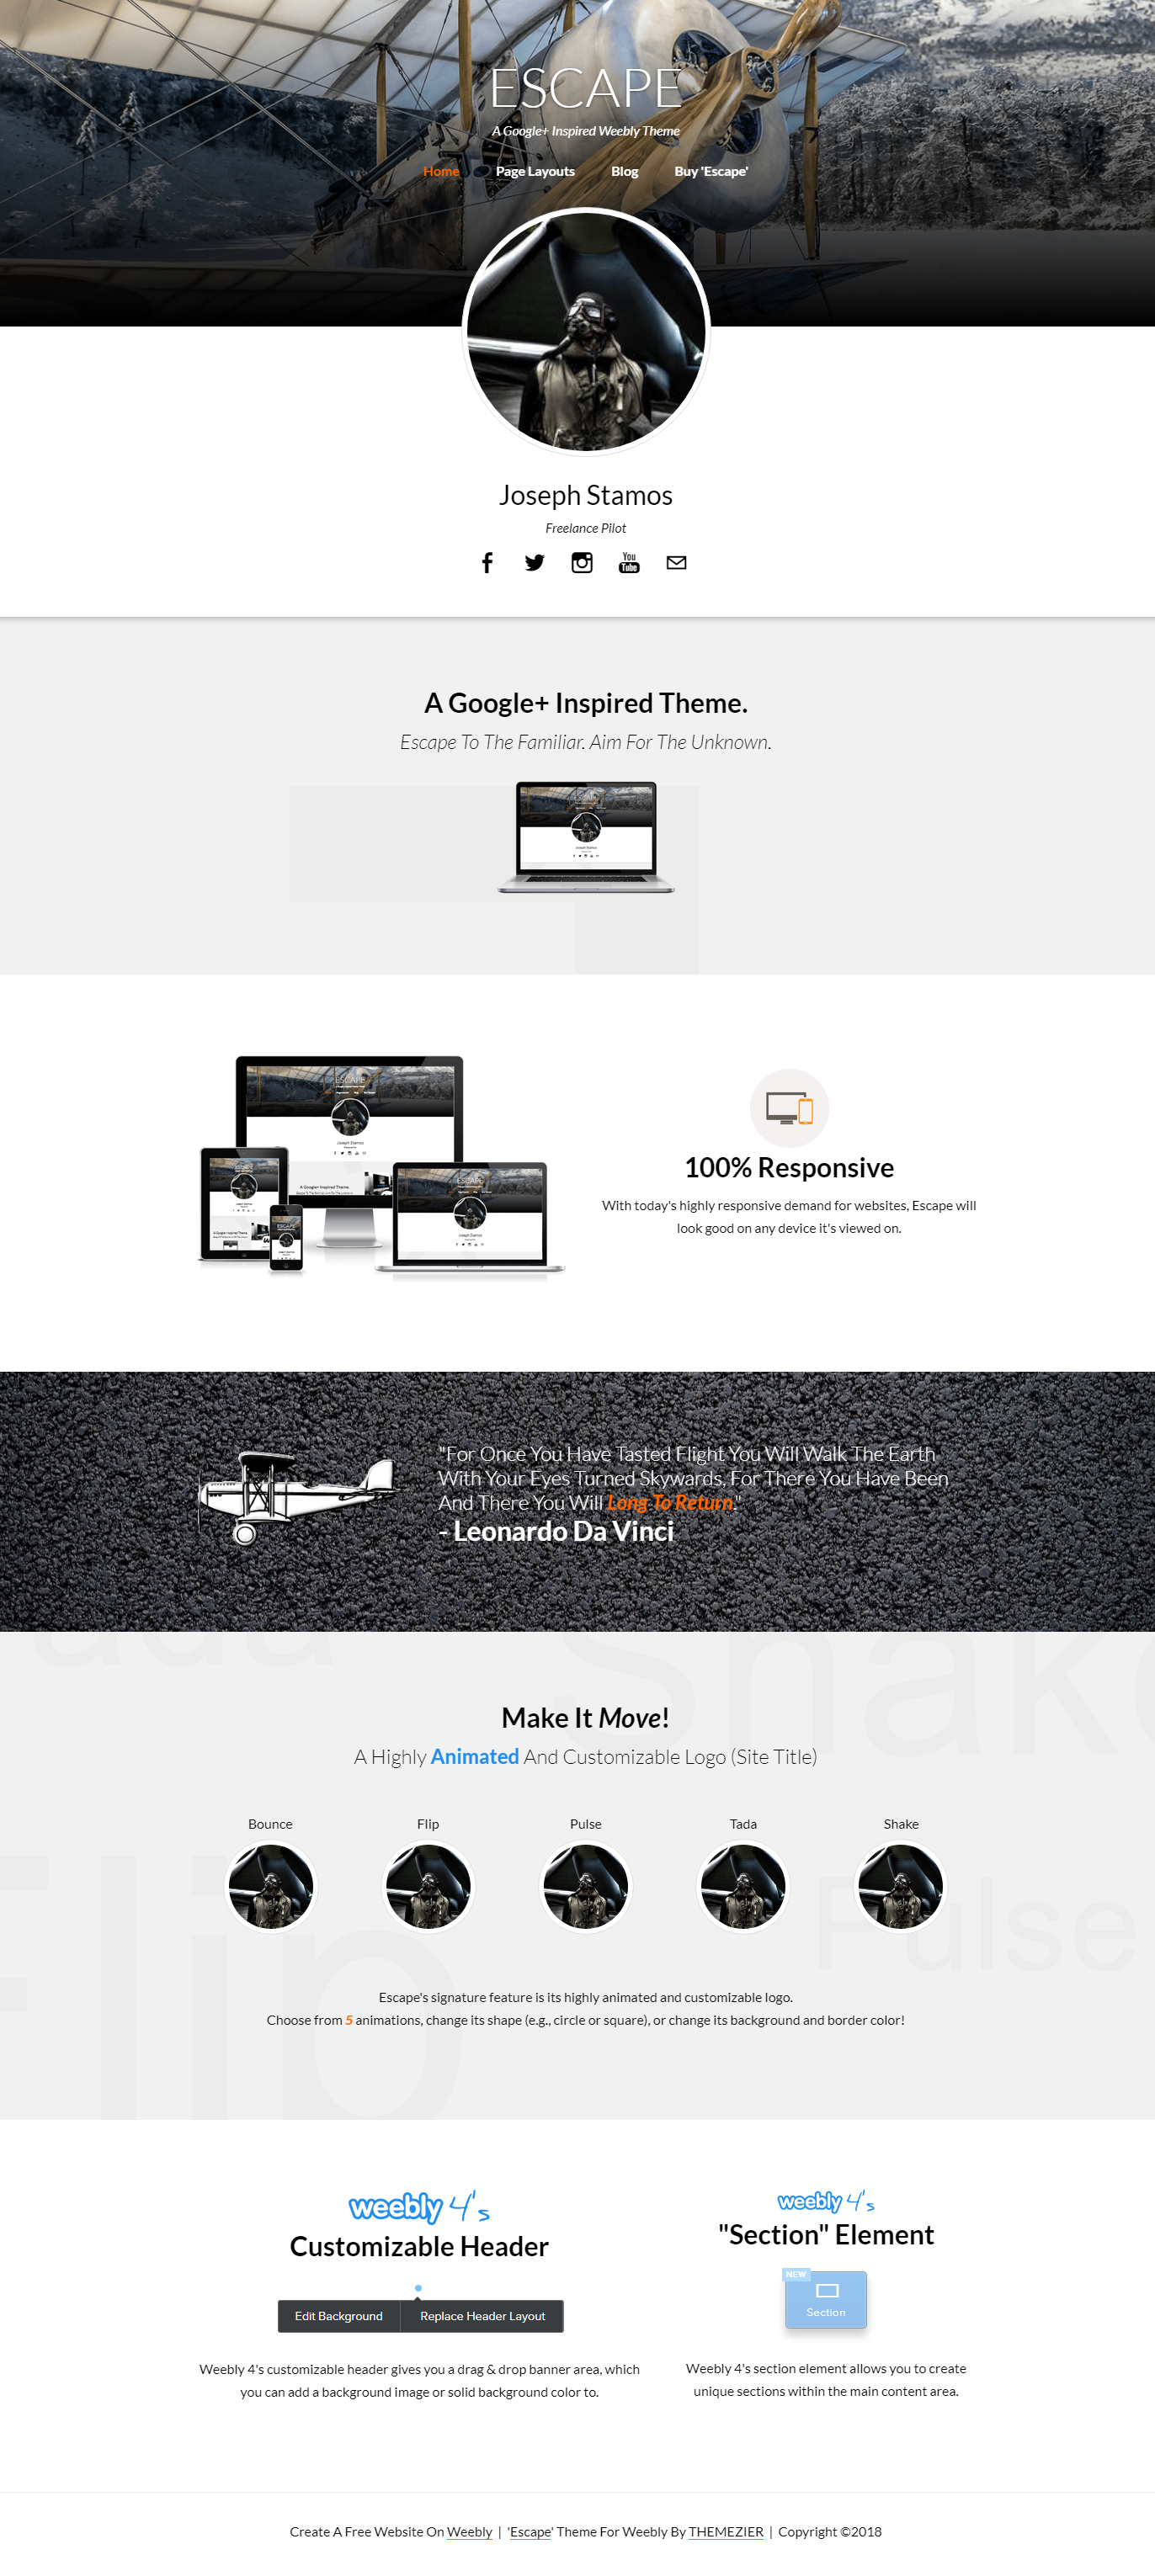 Escape Weebly Profile Theme